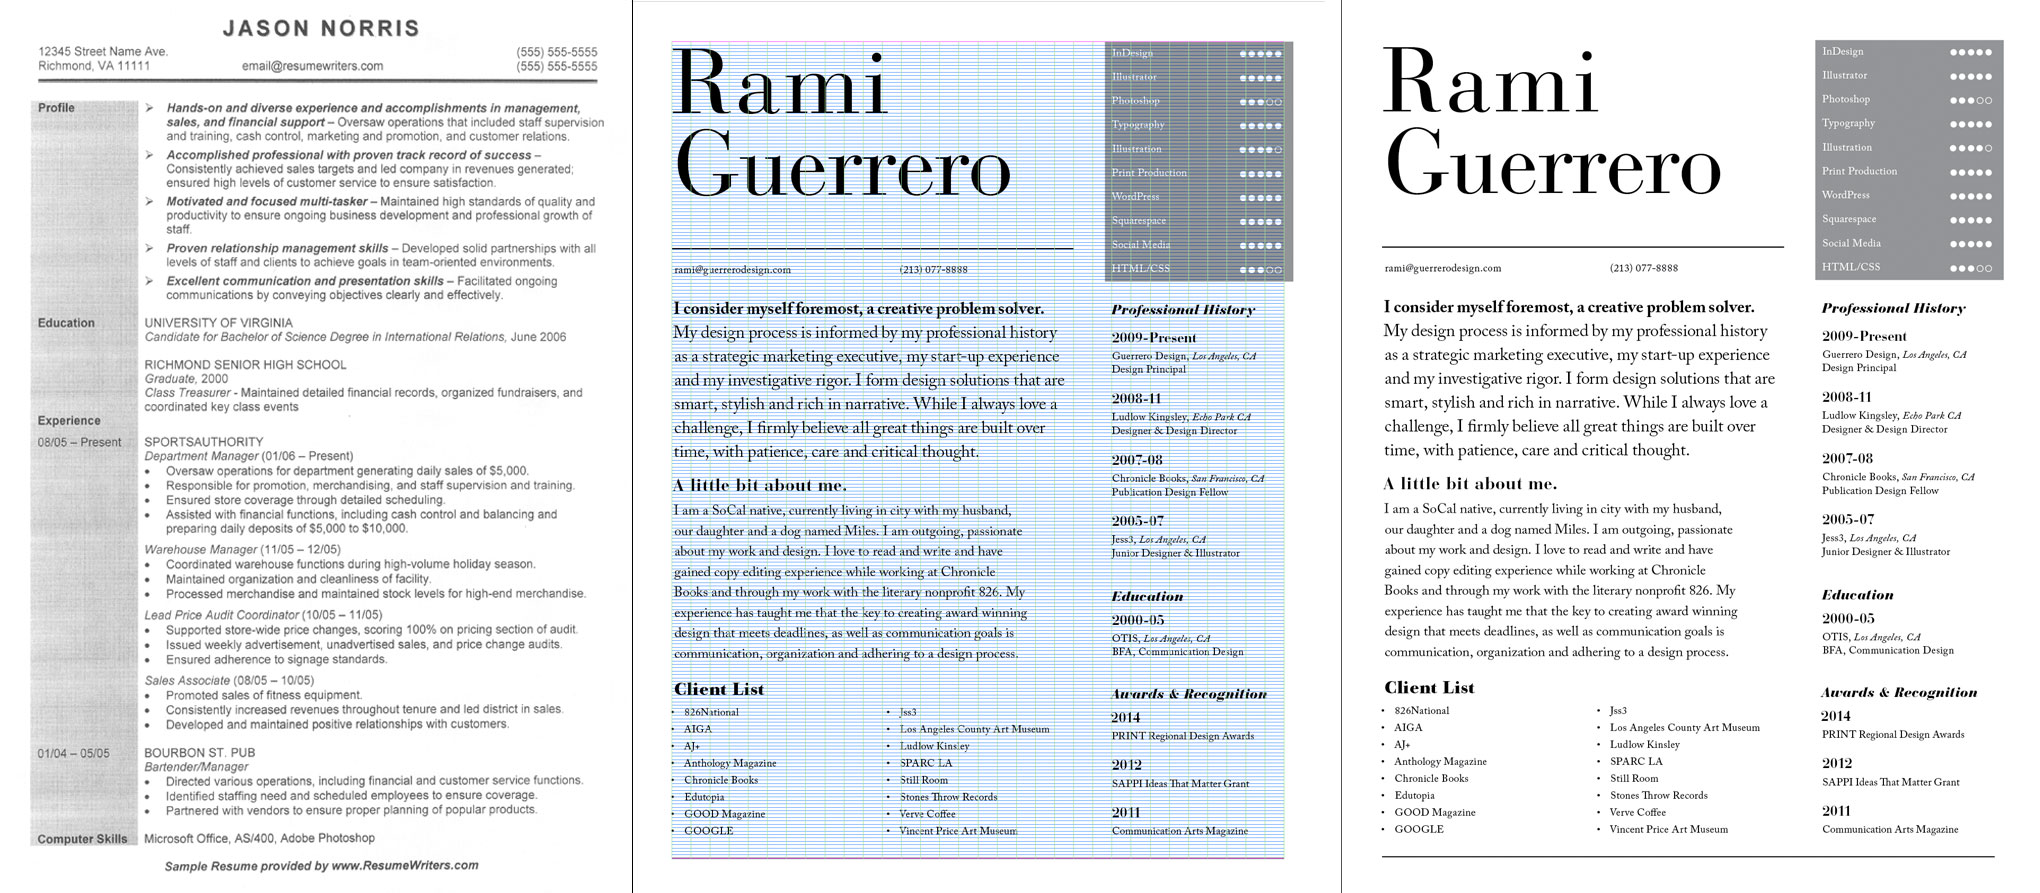 five typography mistakes that prevent your resume from